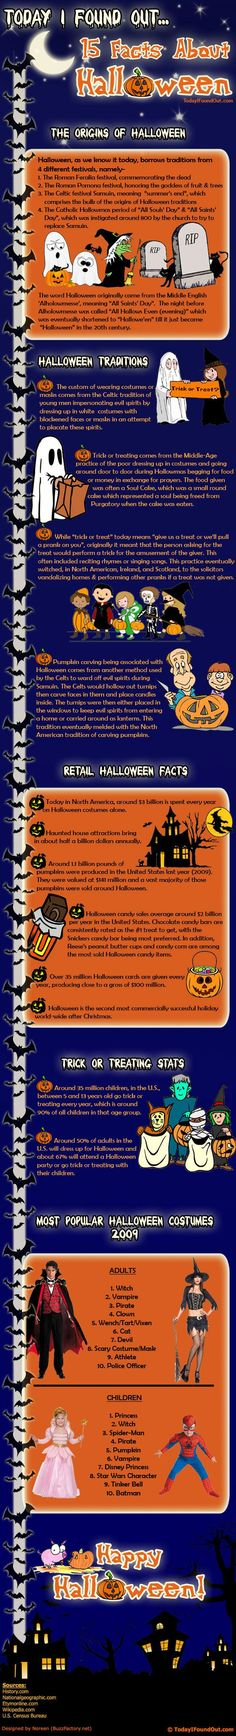 Halloween | Tipsographic | More Halloween tips at http://www.tipsographic.com/: